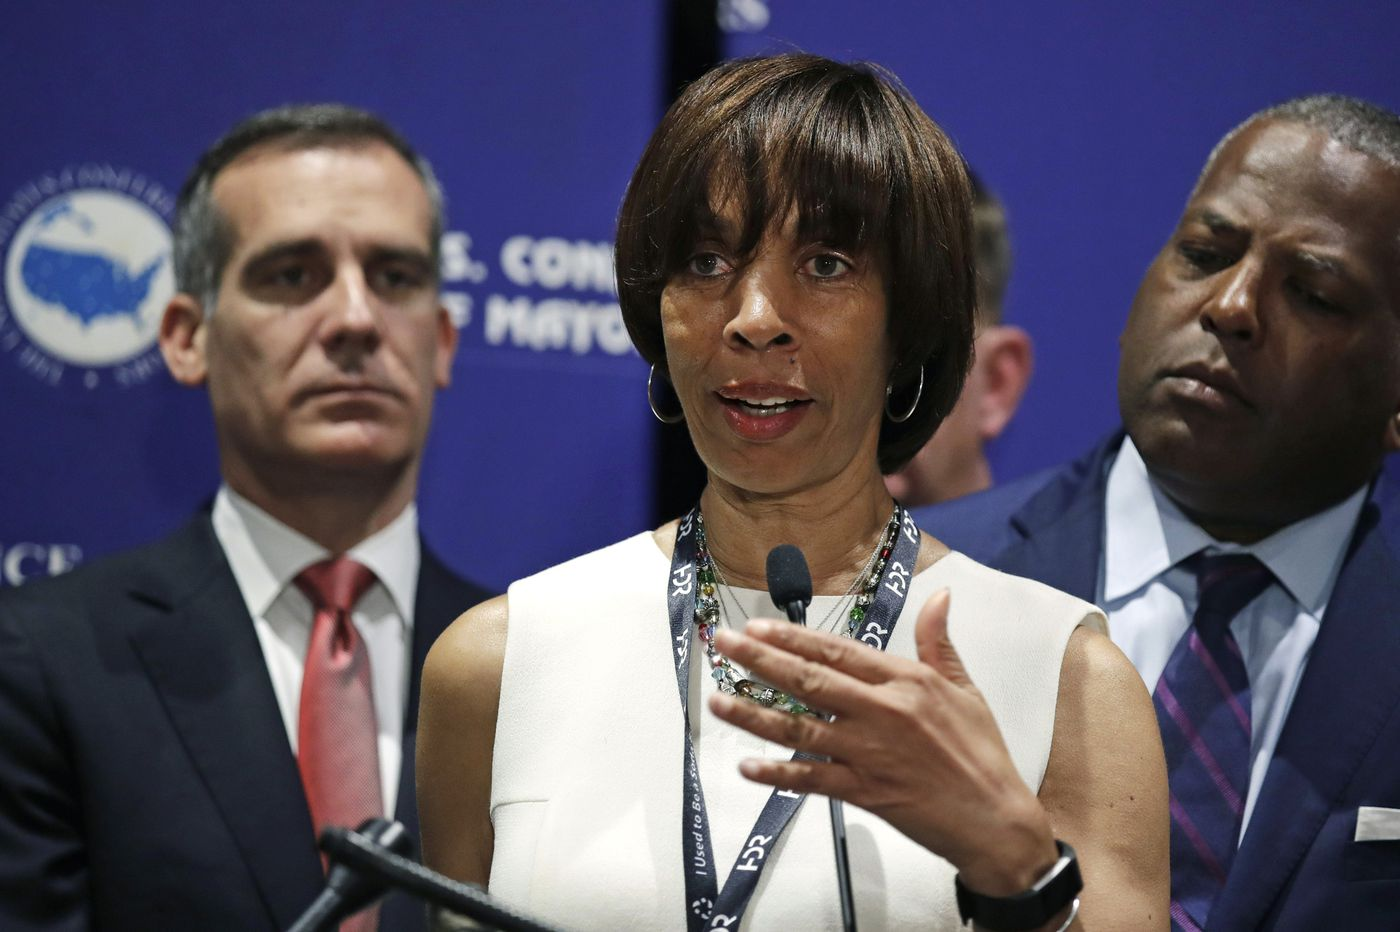 Baltimore Mayor Resigns Amid Scandal Over Self-Published Children's Books